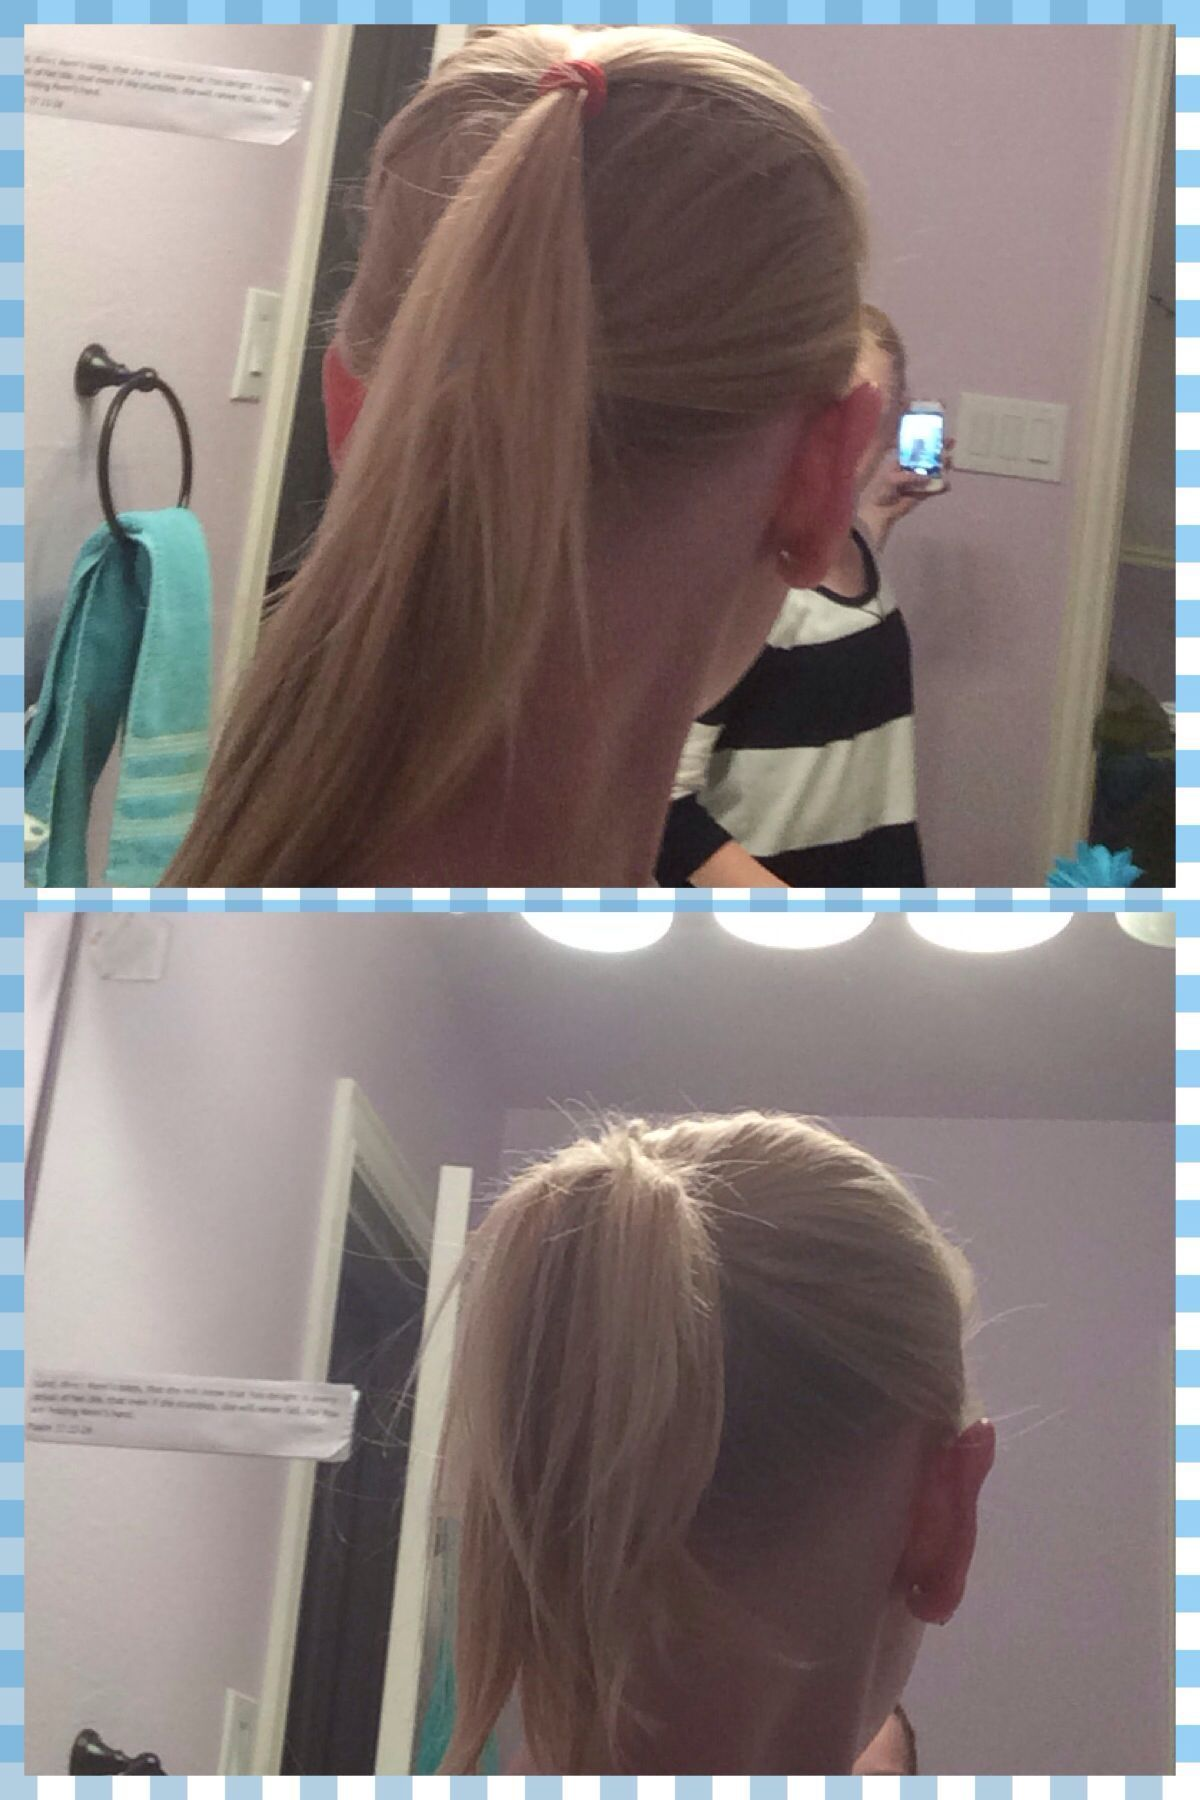 Notice the difference! Refer to the Longer, Fuller Ponytail- it works! #fullerponytail Notice the difference! Refer to the Longer, Fuller Ponytail- it works! #fullerponytail Notice the difference! Refer to the Longer, Fuller Ponytail- it works! #fullerponytail Notice the difference! Refer to the Longer, Fuller Ponytail- it works! #fullerponytail